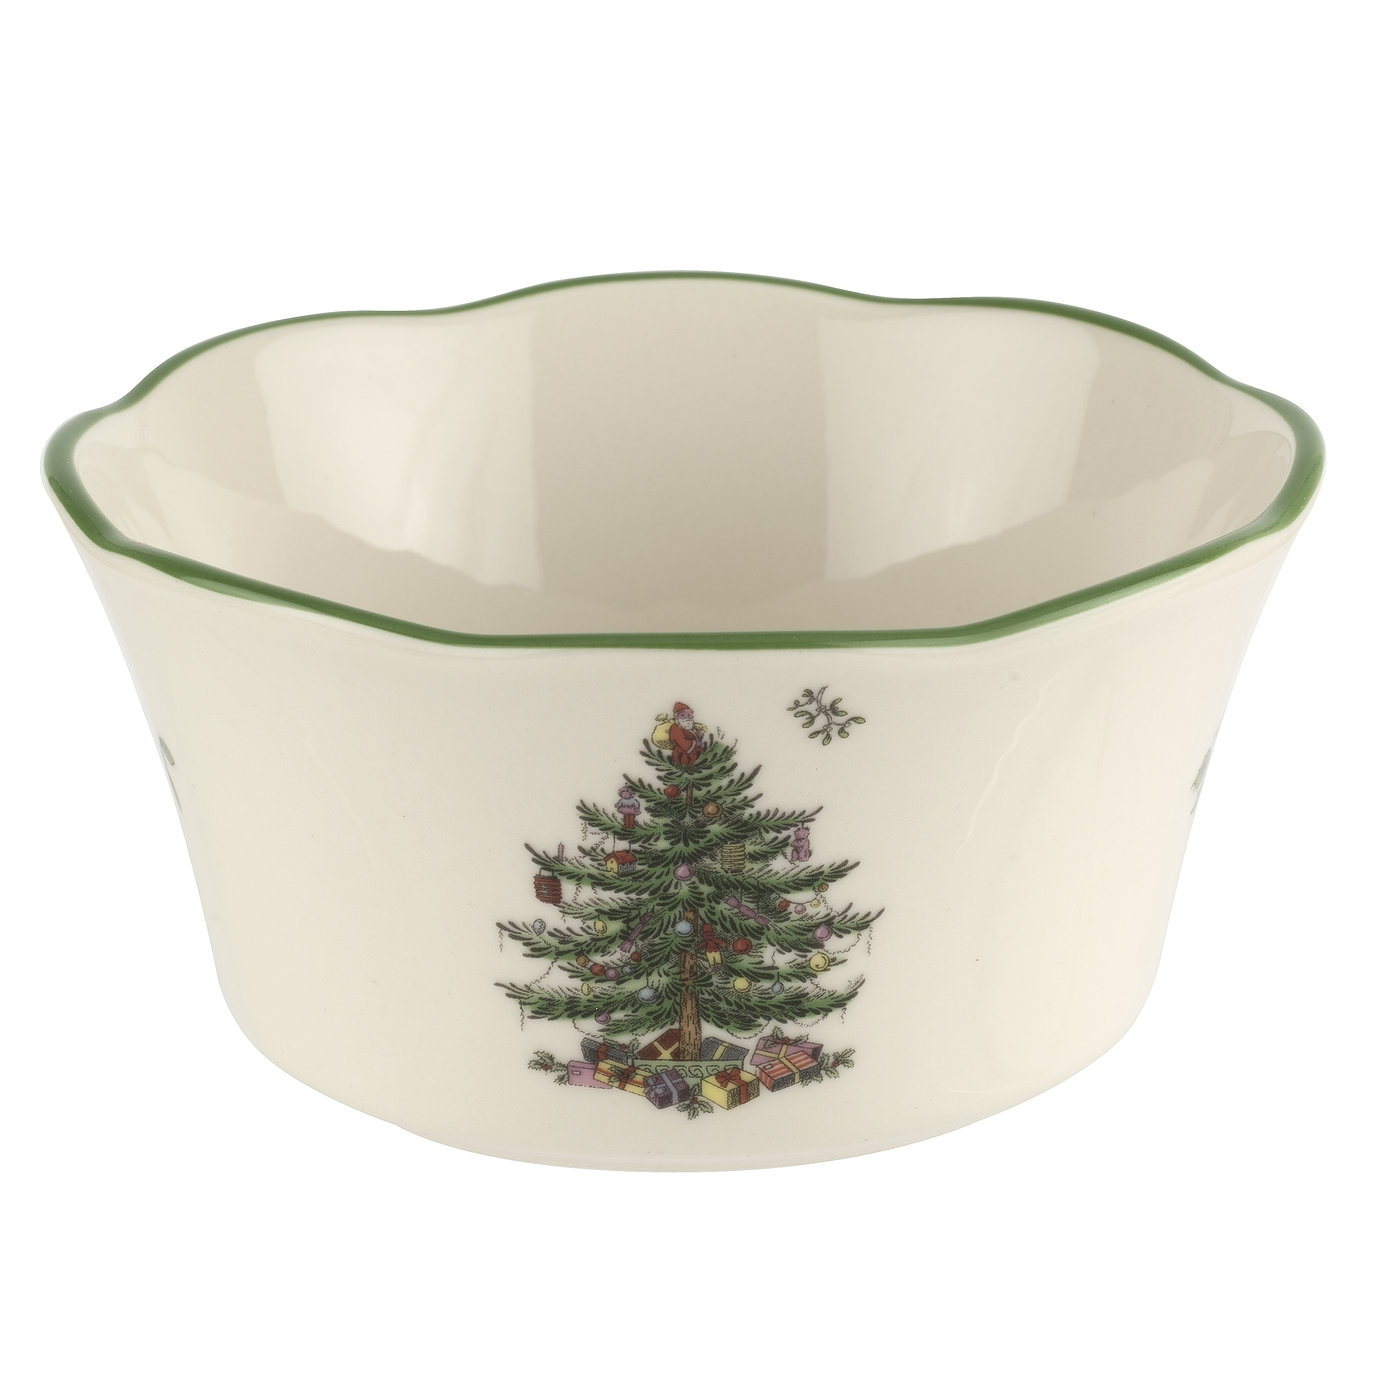 Spode Christmas Tree 4.5 Inch Scalloped Bowl image number 0